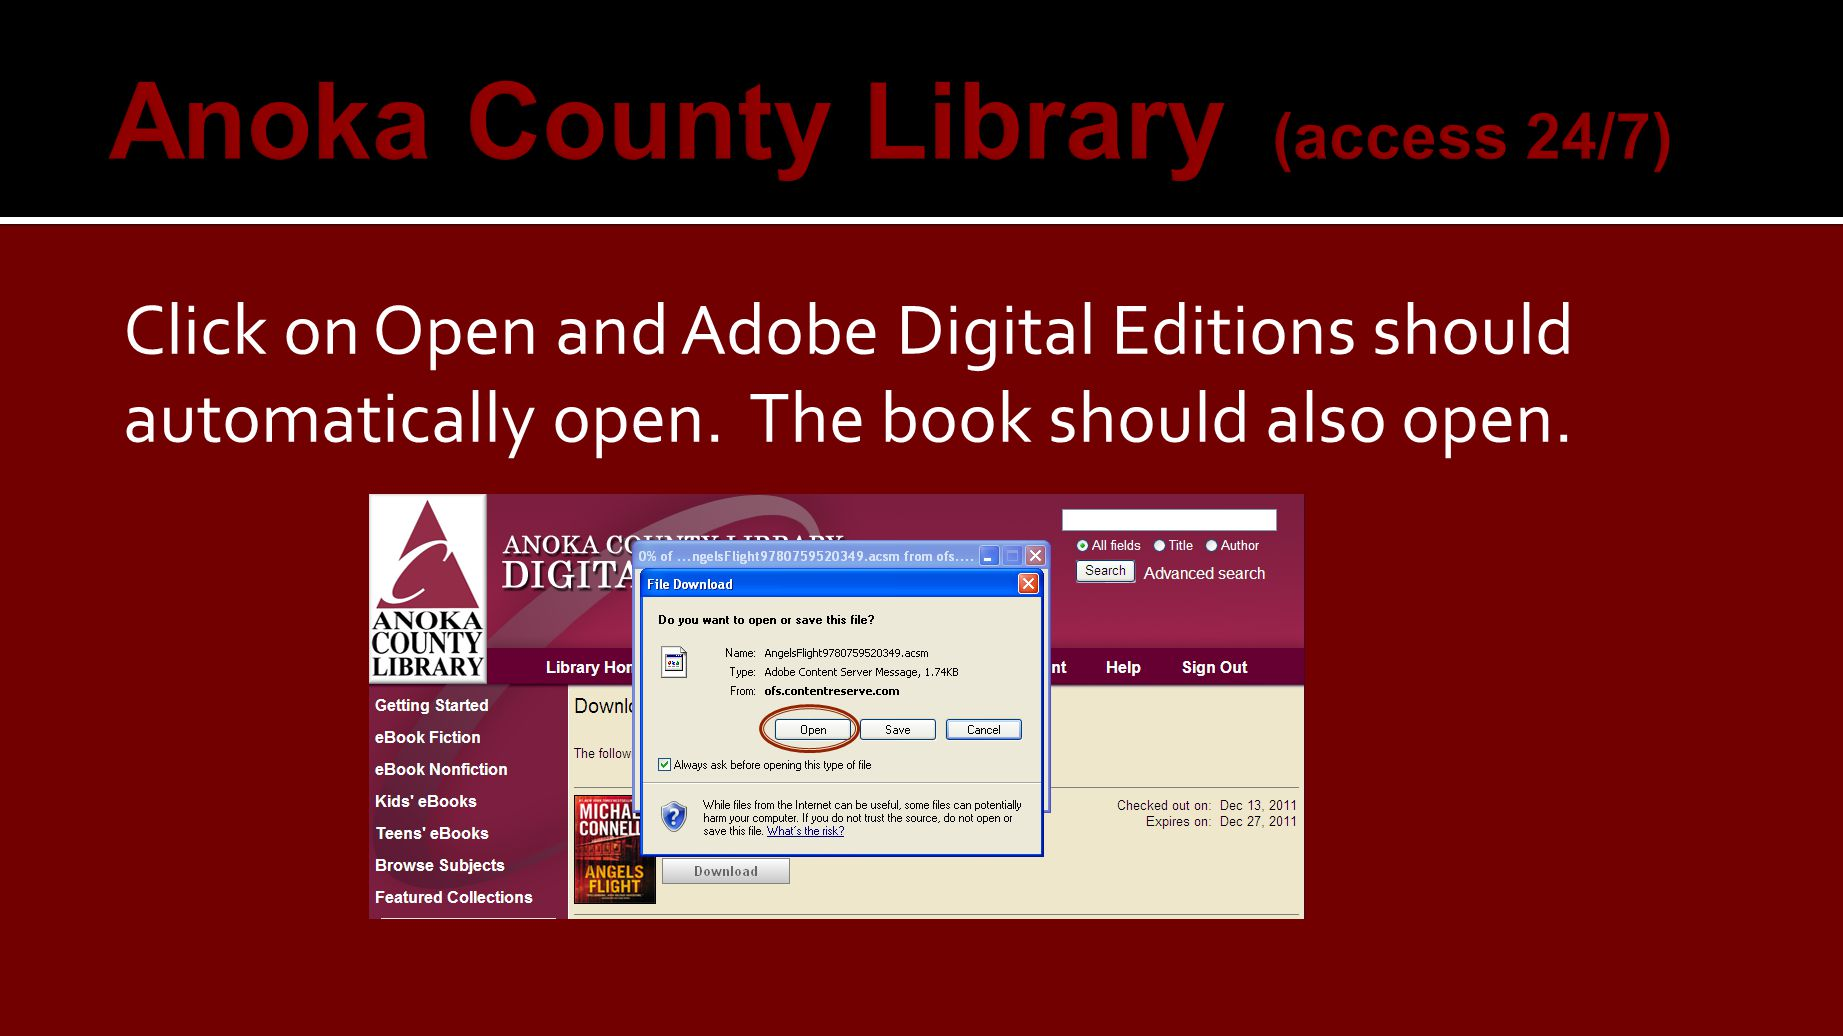 Click on Open and Adobe Digital Editions should automatically open. The book should also open.